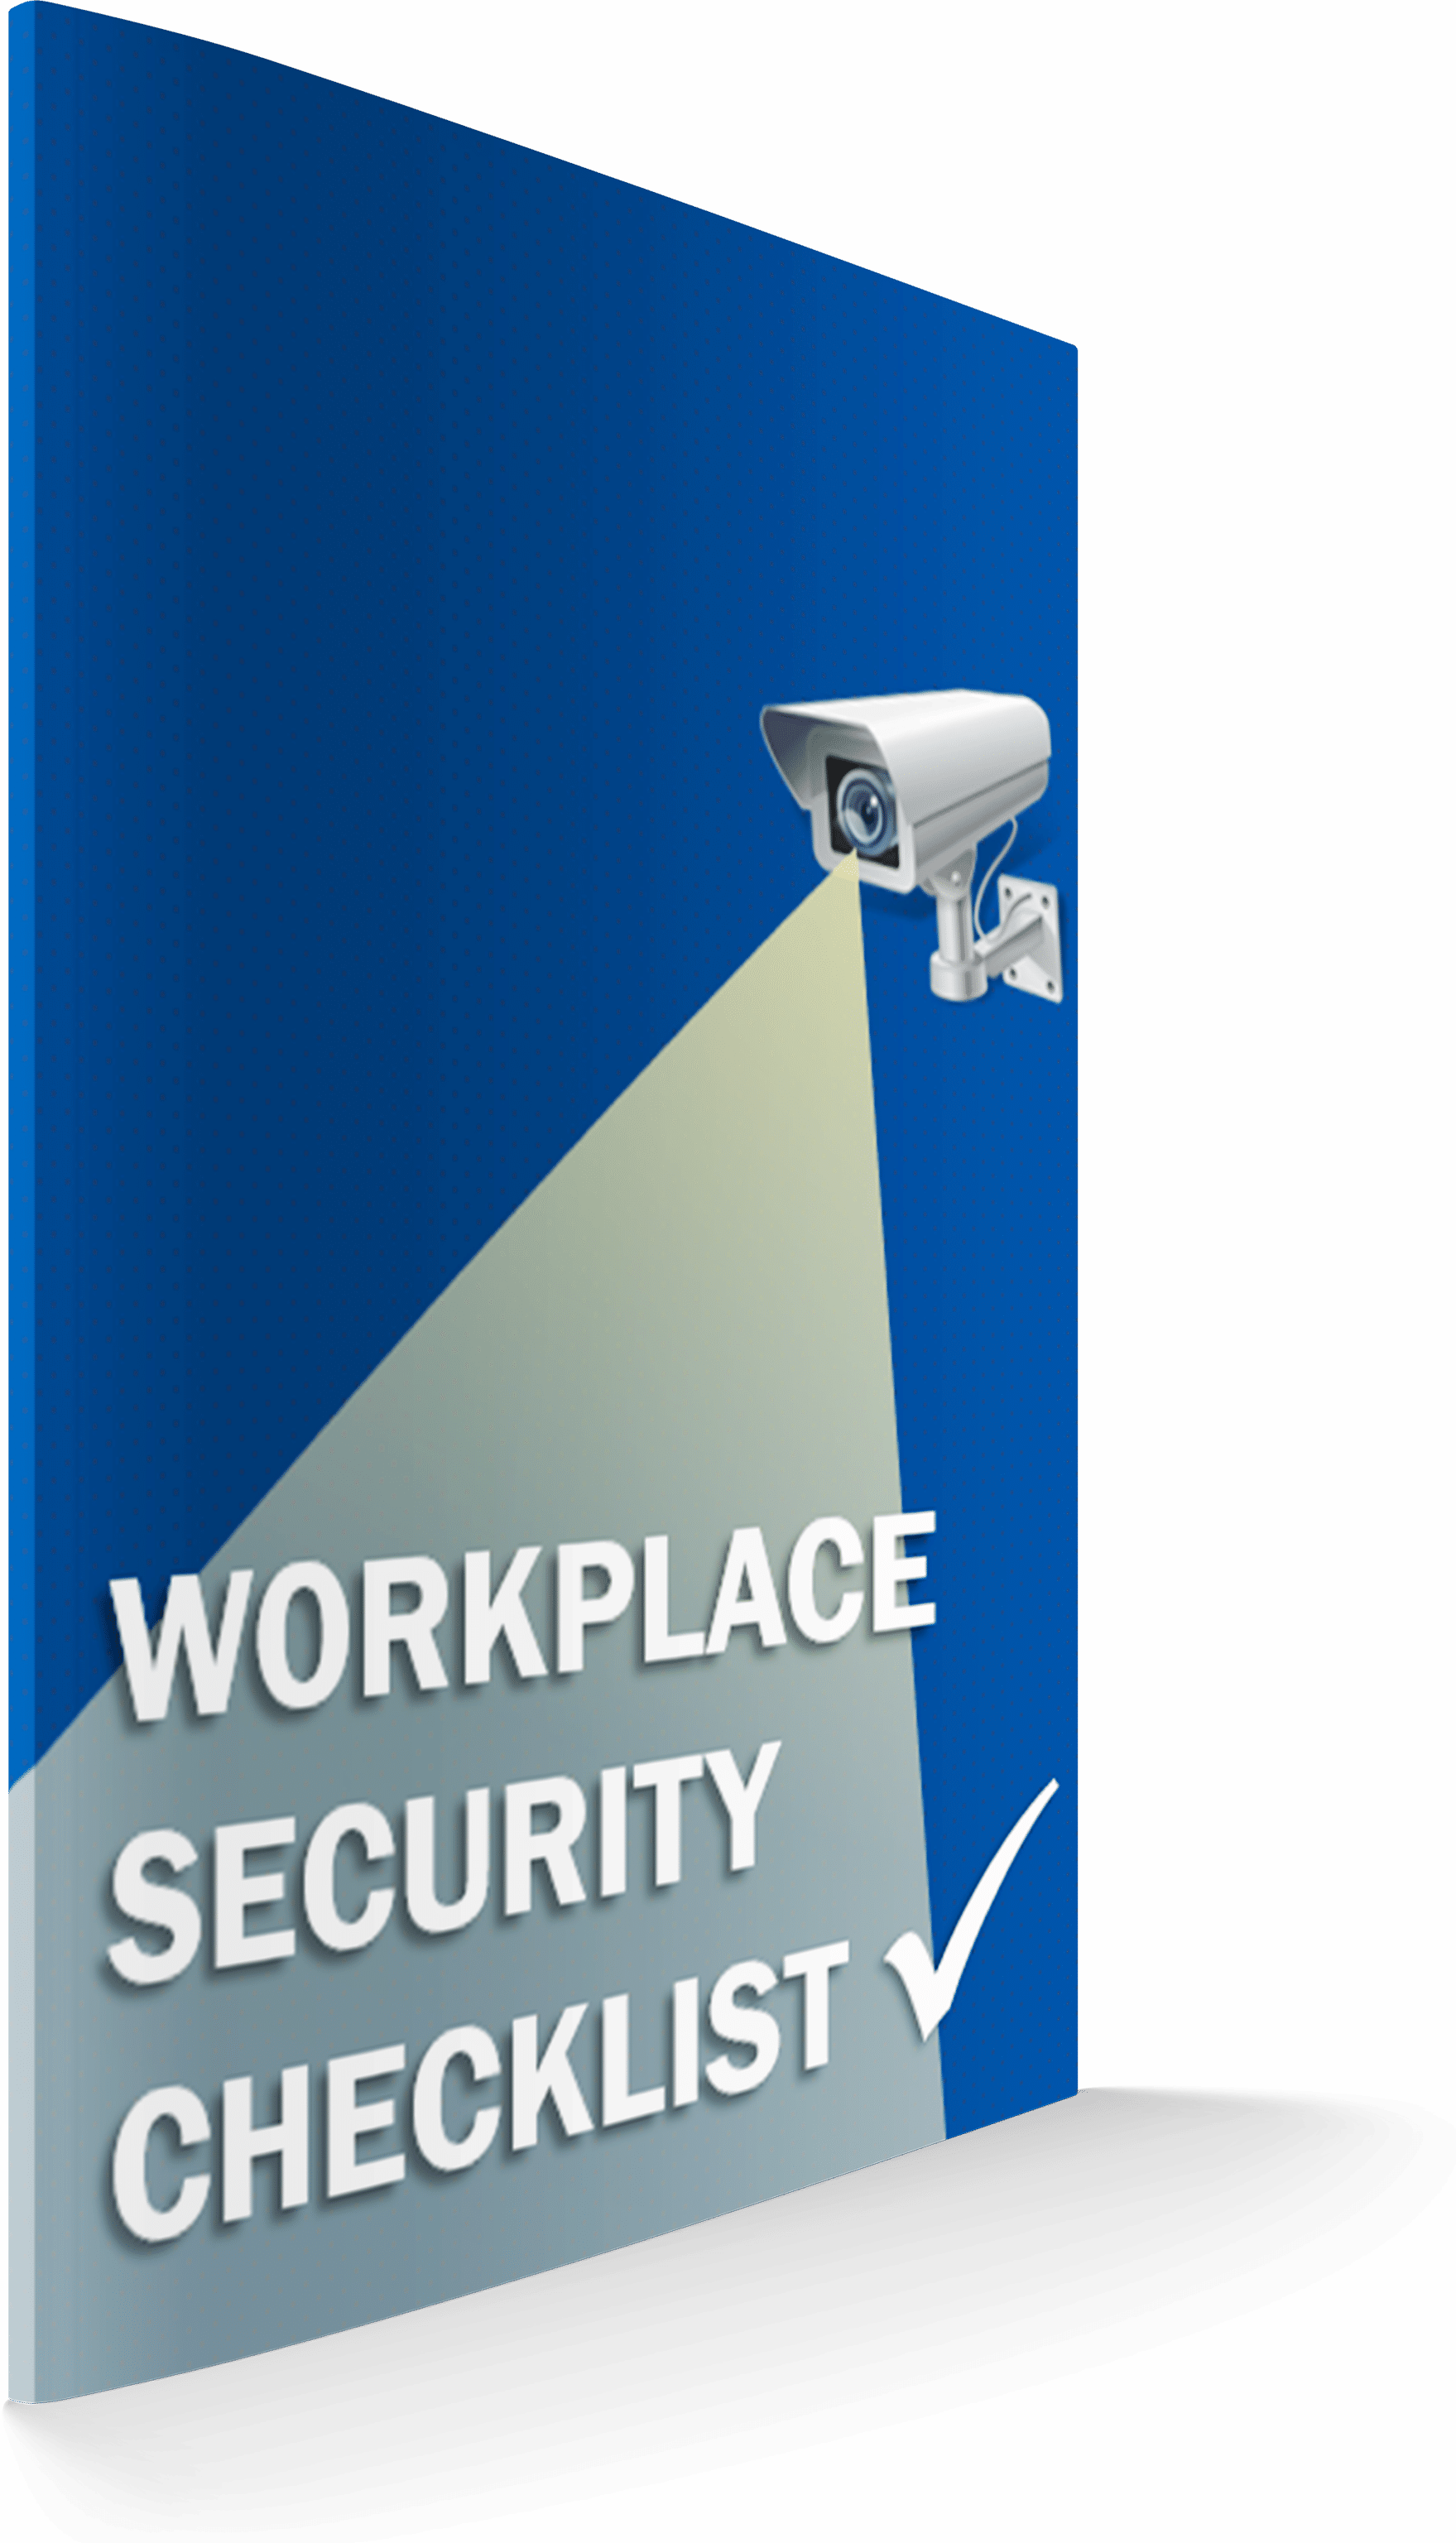 Workplace Security Mockup